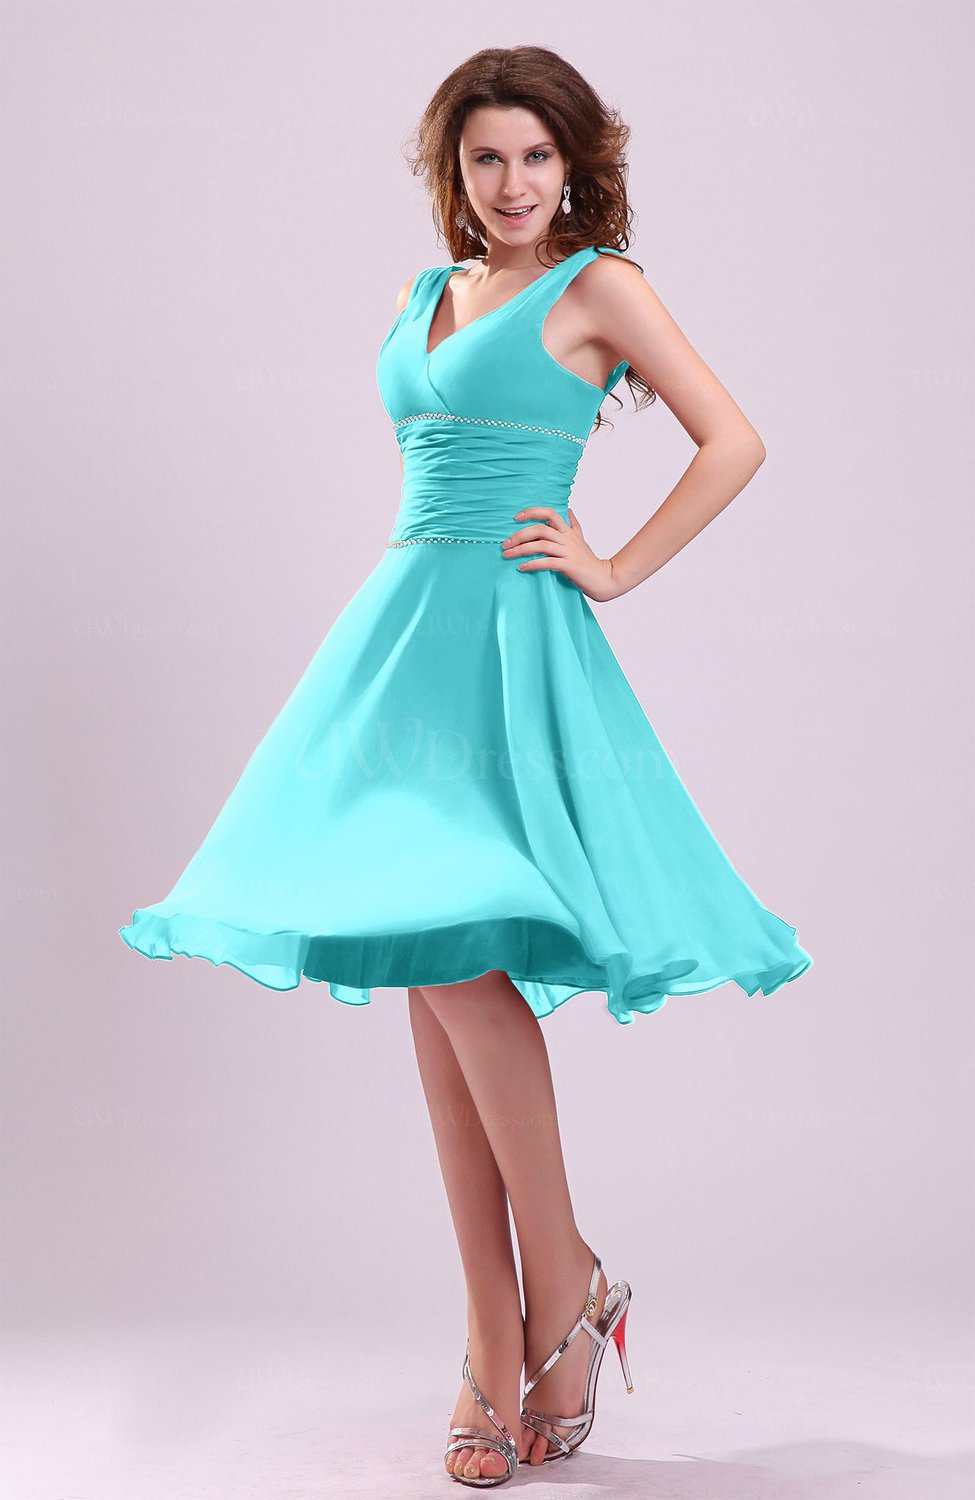 Turquoise Color Graduation Dresses - UWDress.com